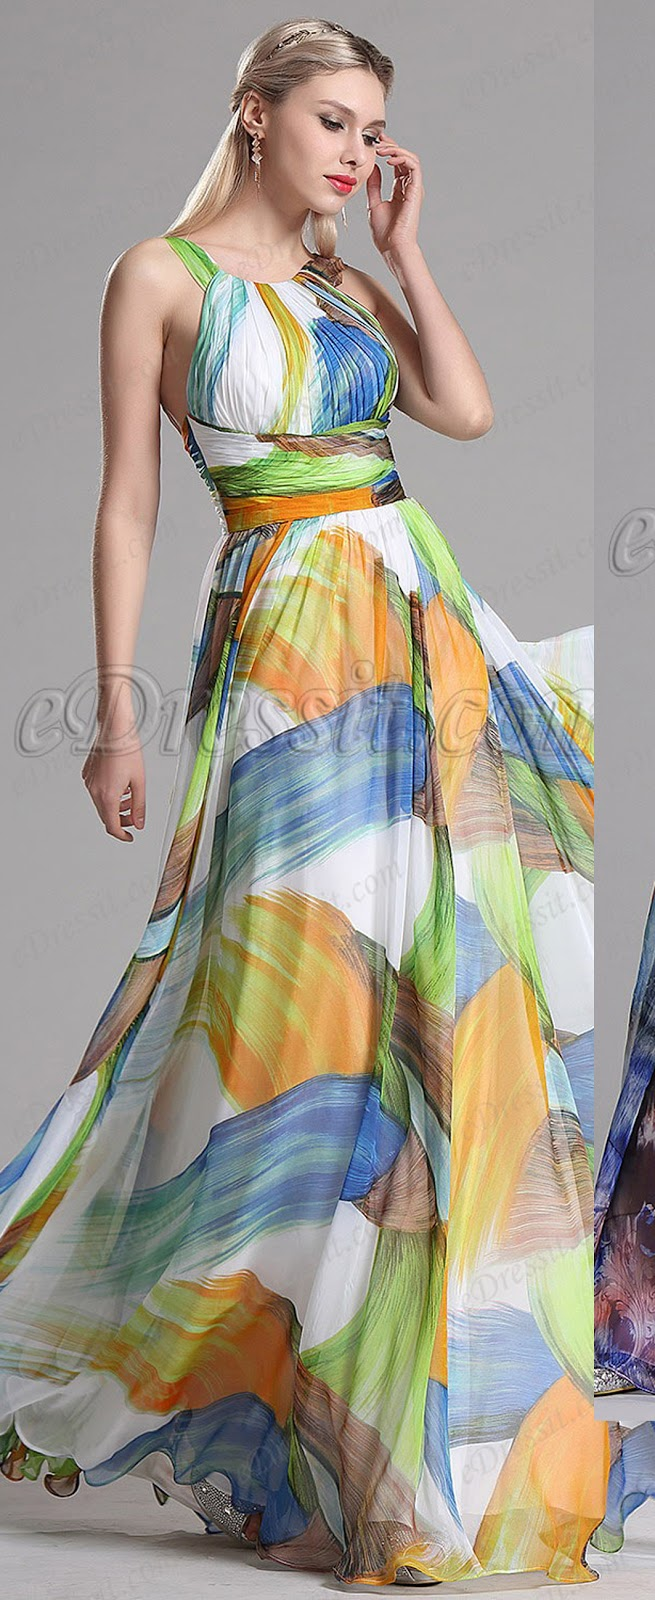 http://www.edressit.com/halter-neck-printed-boho-vacation-formal-dress-x07153947-_p4645.html